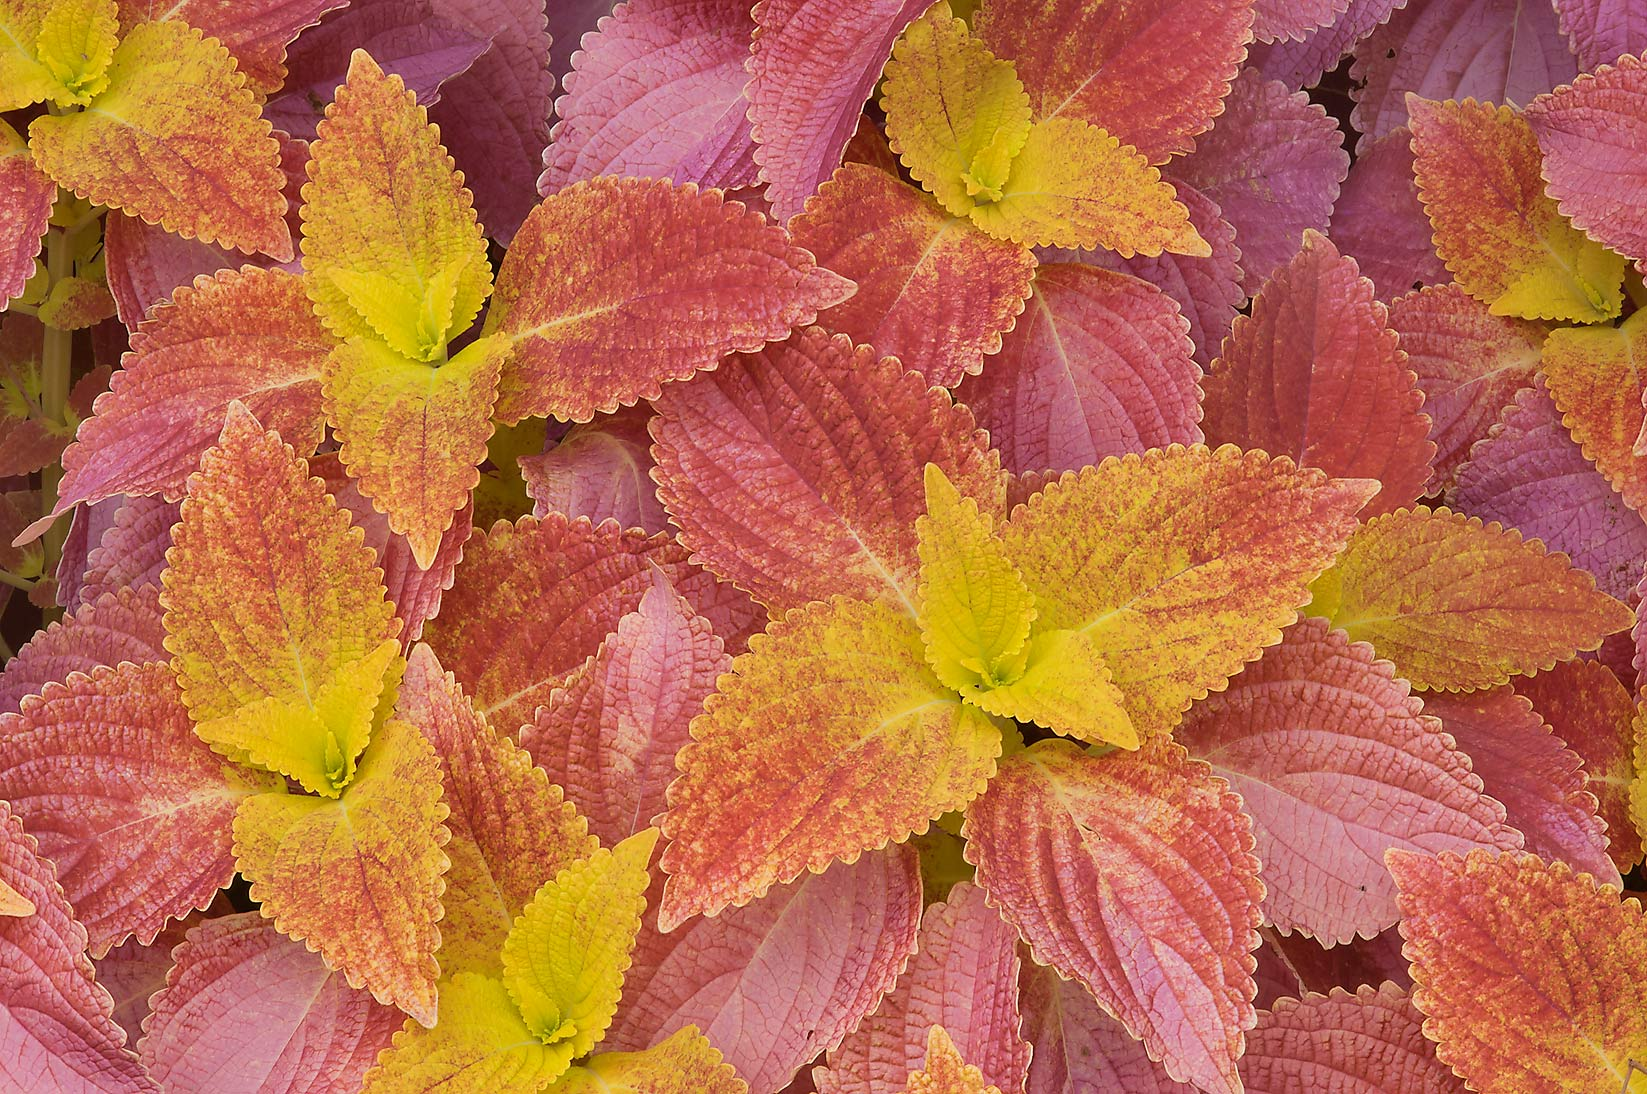 Orange leaves of coleus in Mercer Arboretum and...Gardens. Humble (Houston area), Texas